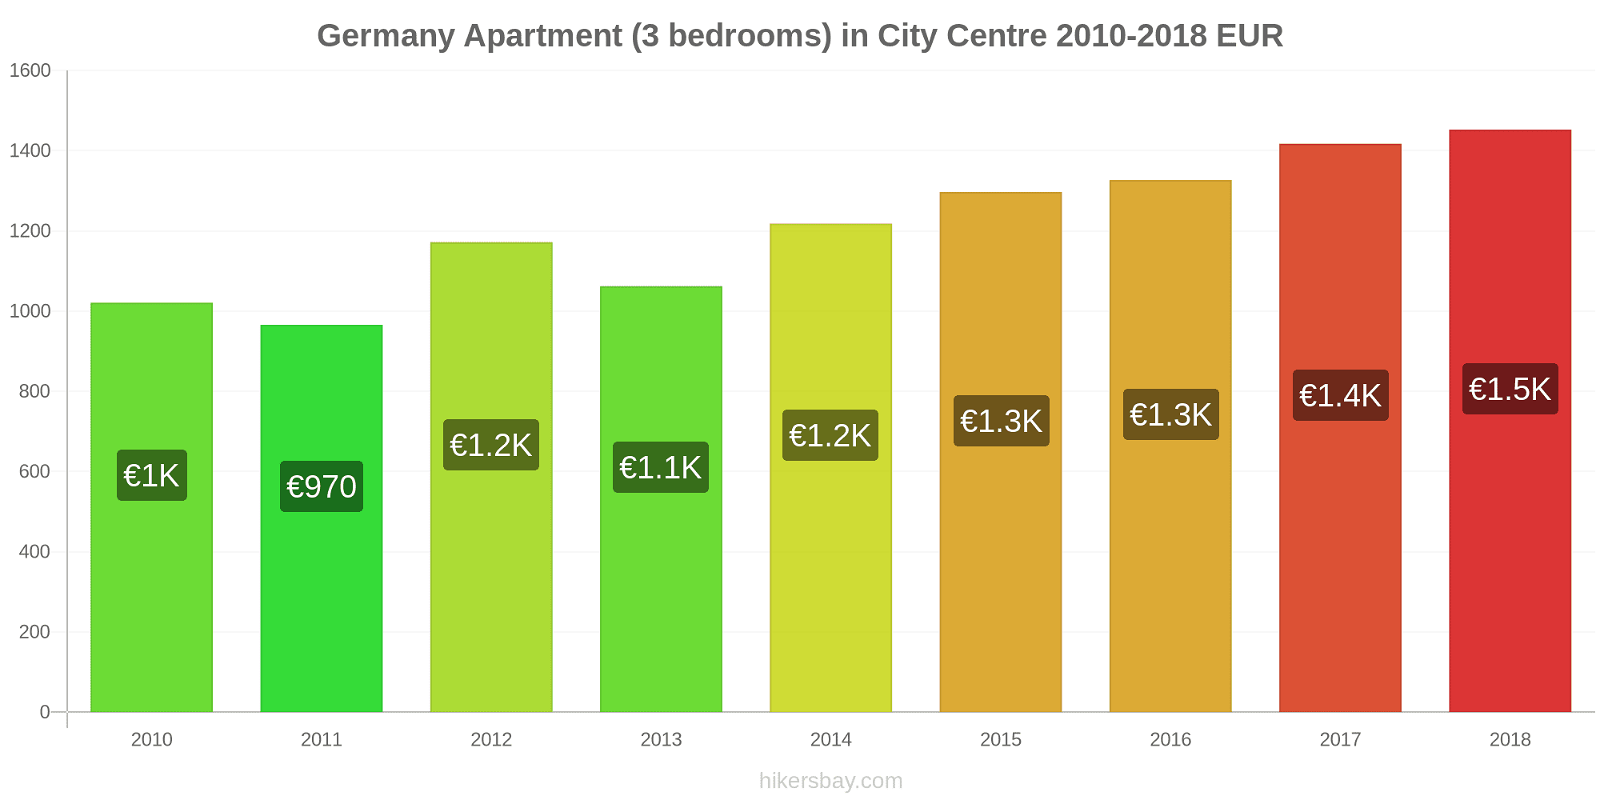 Germany price changes Apartment (3 bedrooms) in City Centre hikersbay.com